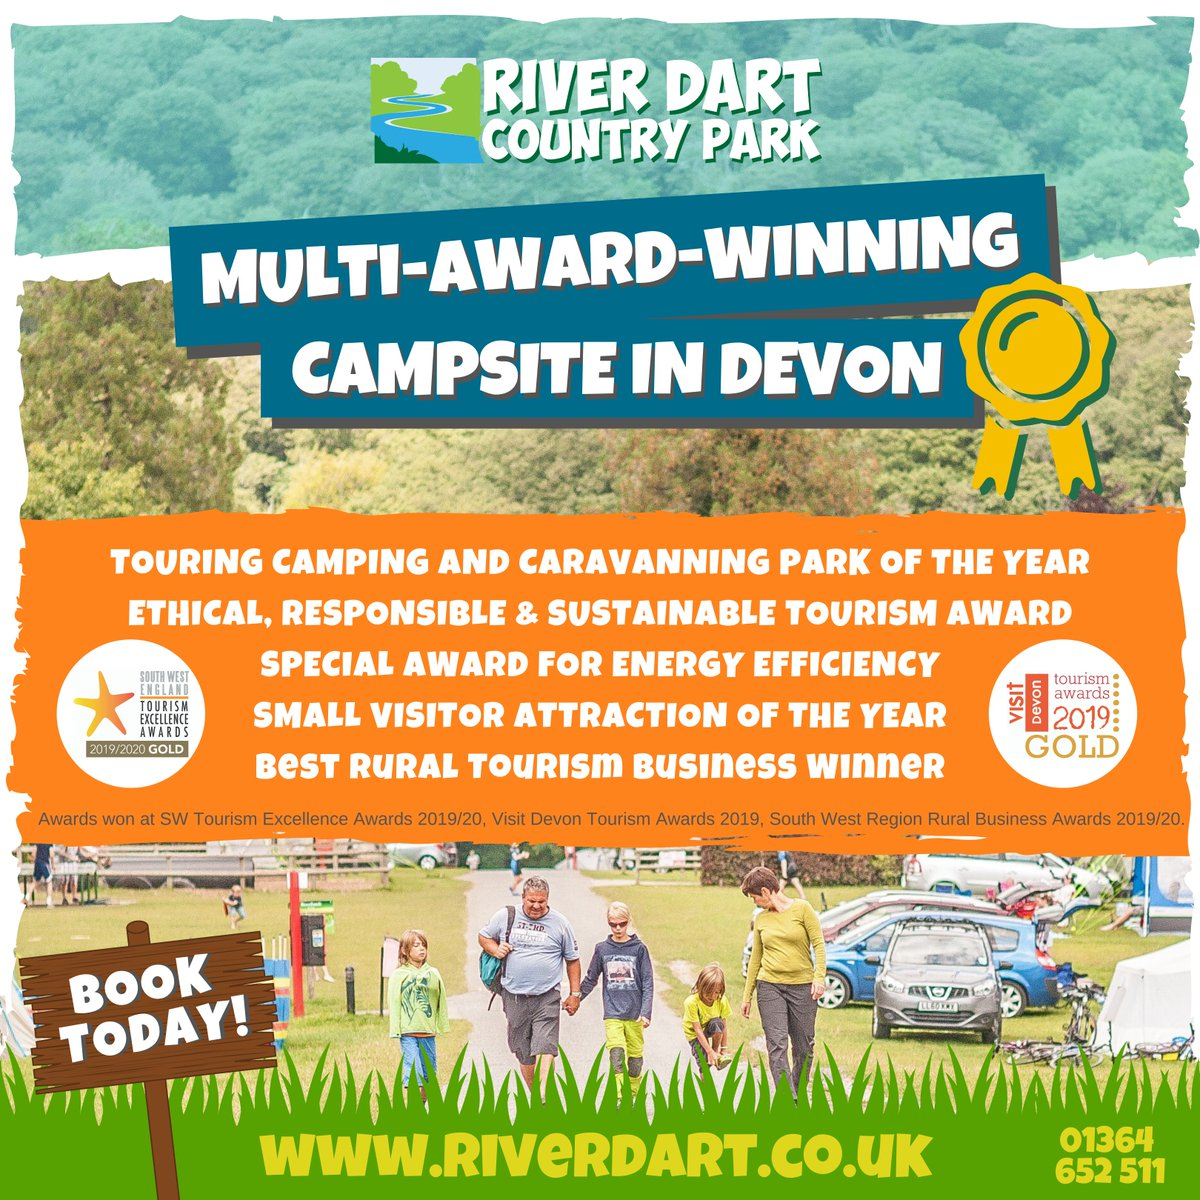 The suns shining and were just weeks away from opening our multi-award-winning campsite for 2020! ☀️😎🌳 Come and see what all the fuss is about... riverdart.co.uk 01364 652 511 #camping #holiday #caravanning #devon #dartmoor #riverdartcountrypark